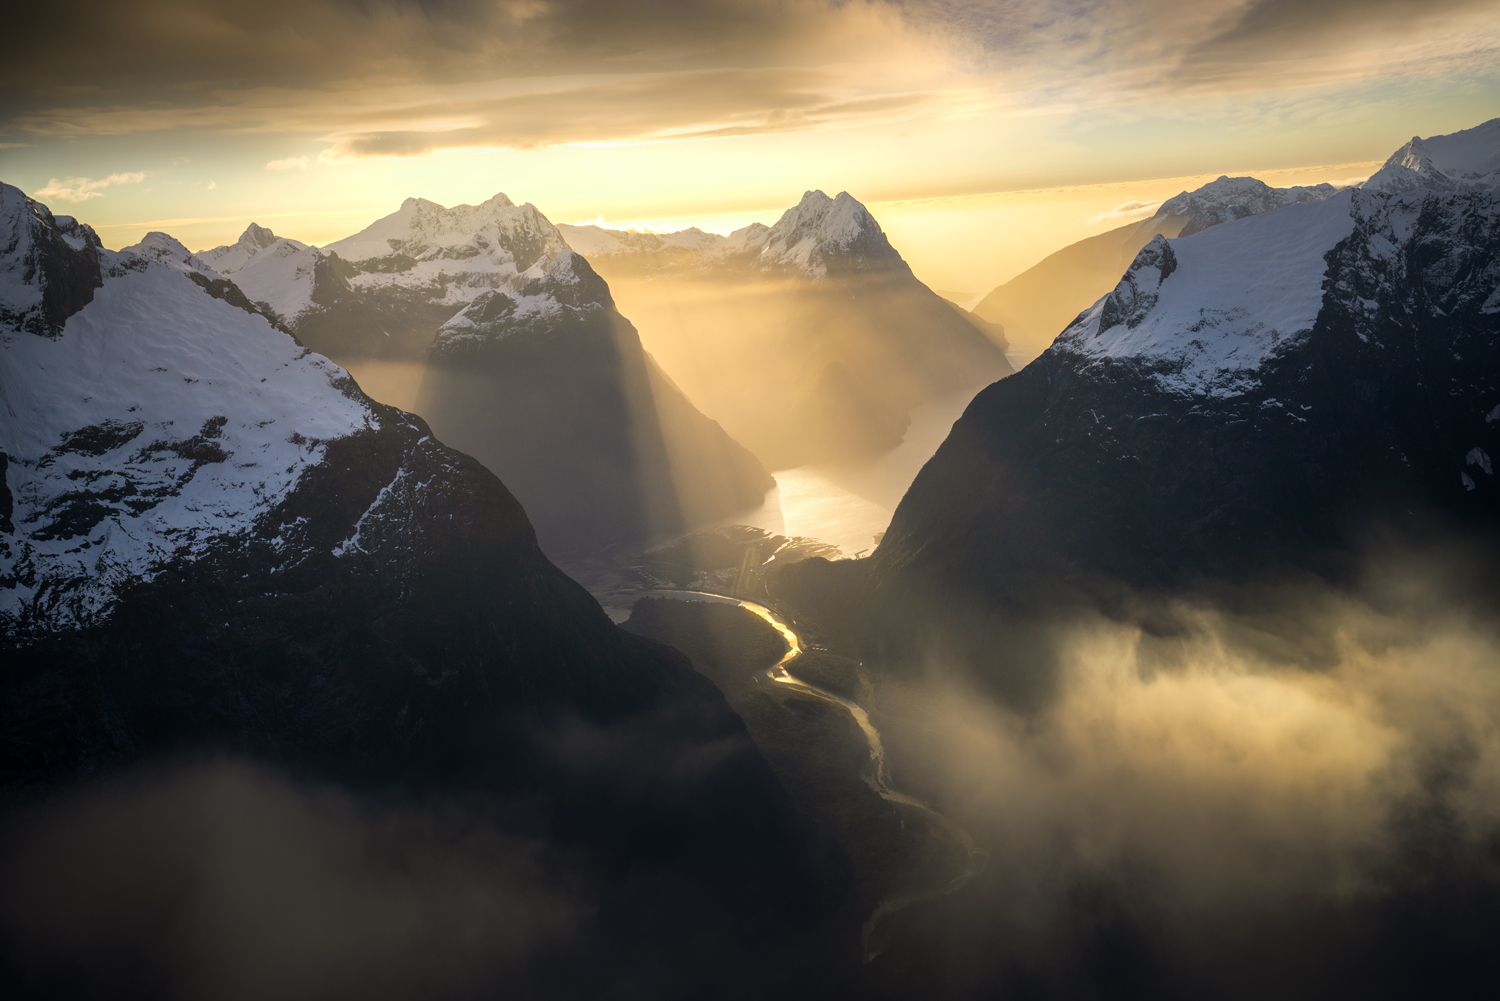 Milford-Sound-Fiordland-NZ-William-Patino